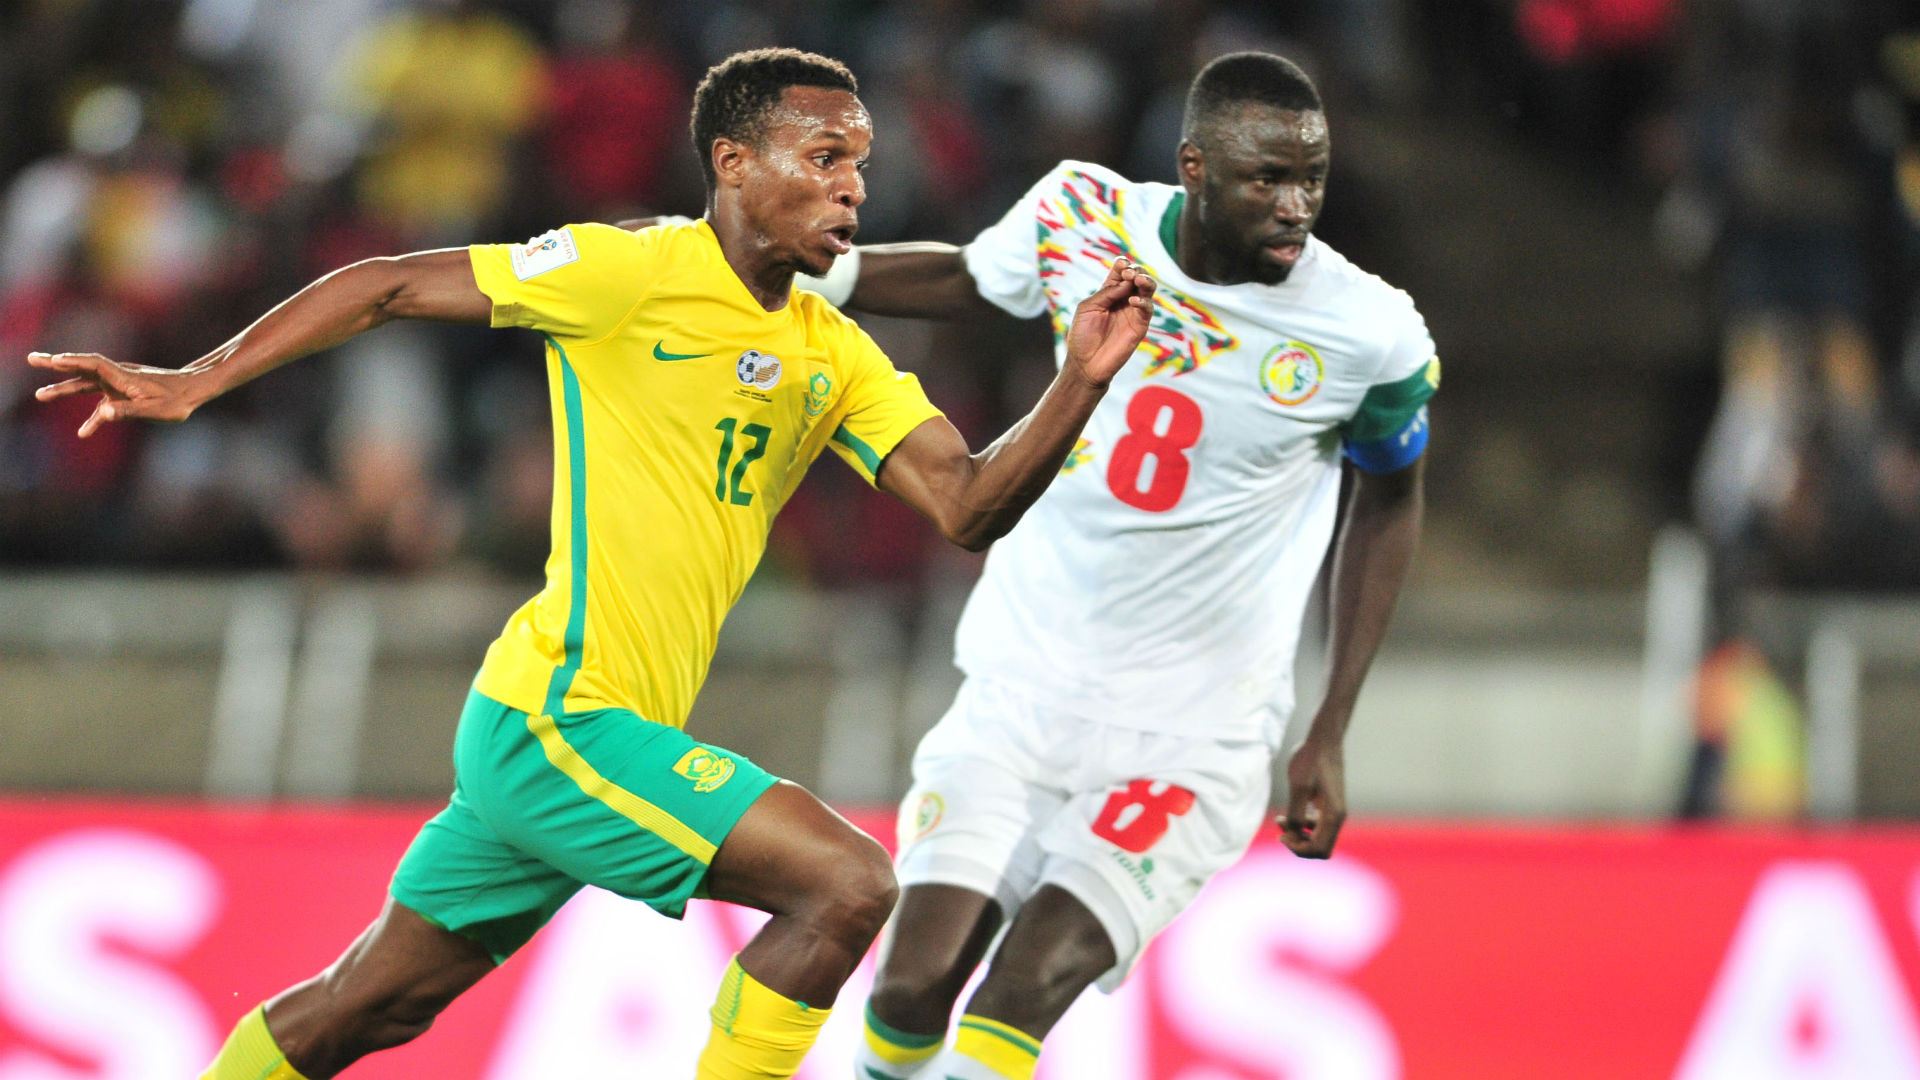 South Africa, Themba Zwane & Senegal, Cheikhou Kouyate